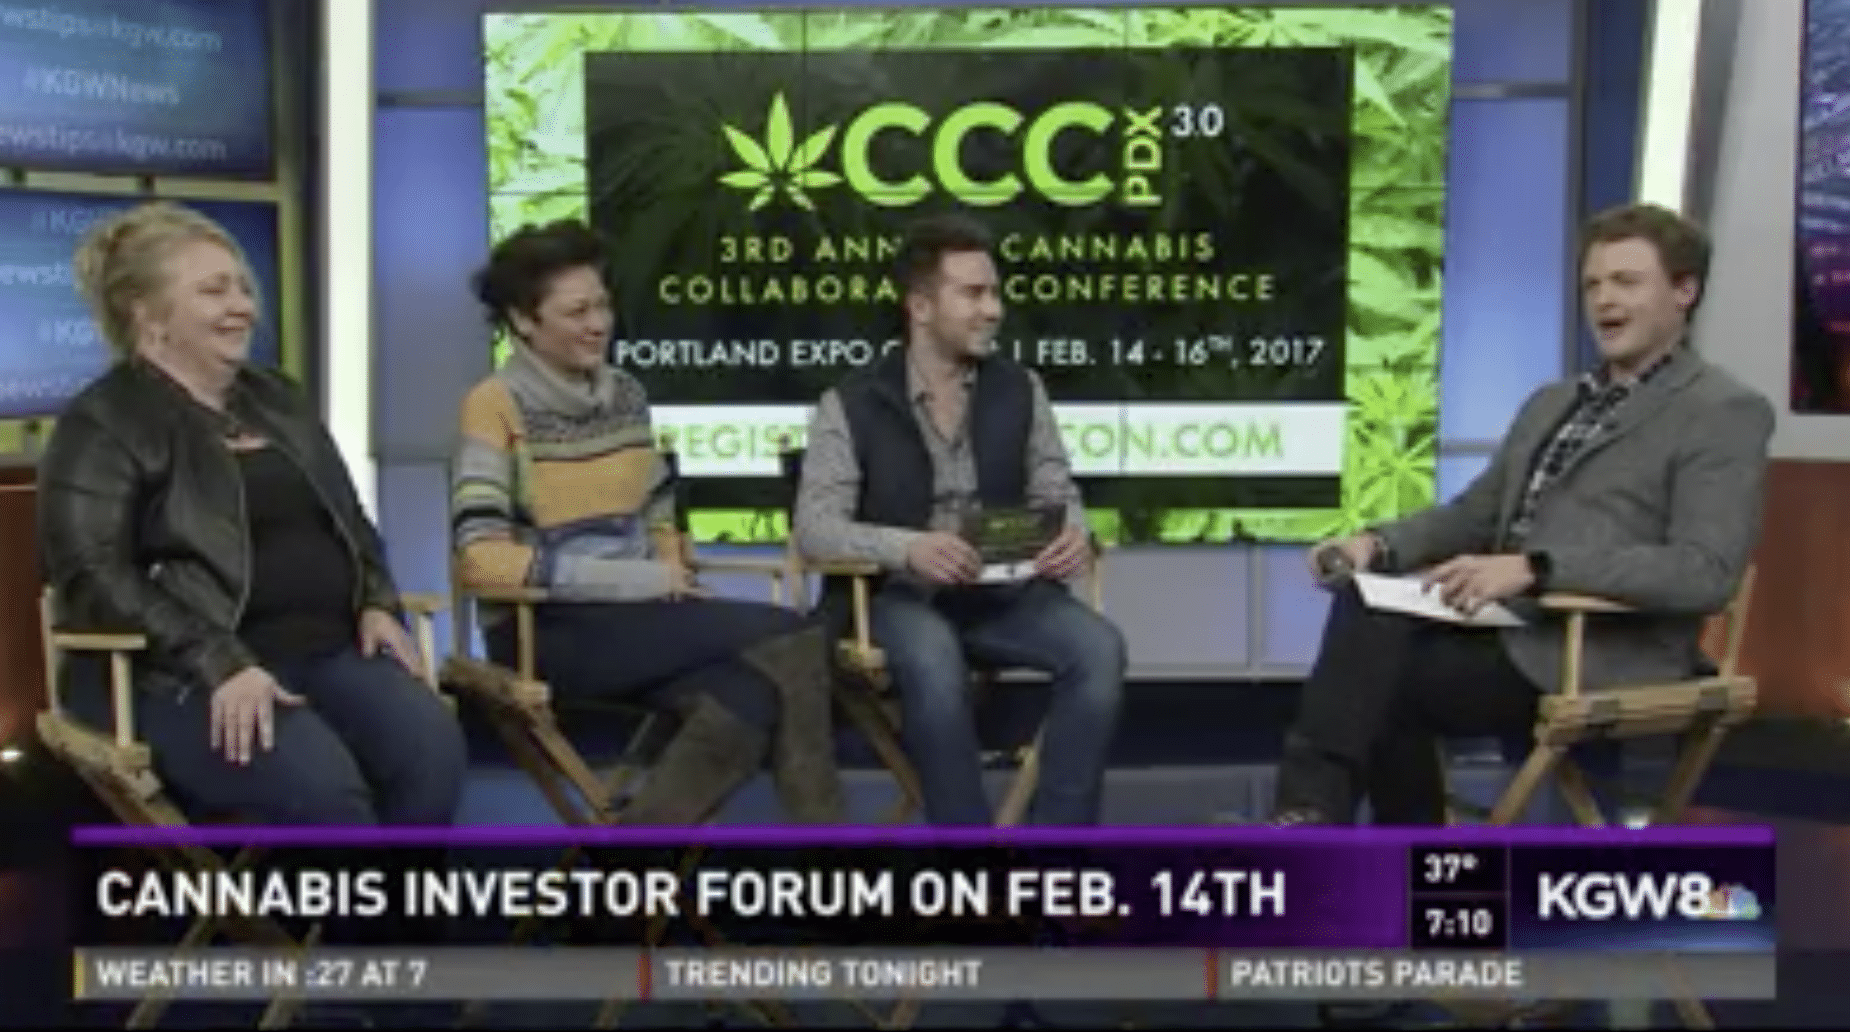 Cannabis Collaborative Conference to Hold Investor Forum